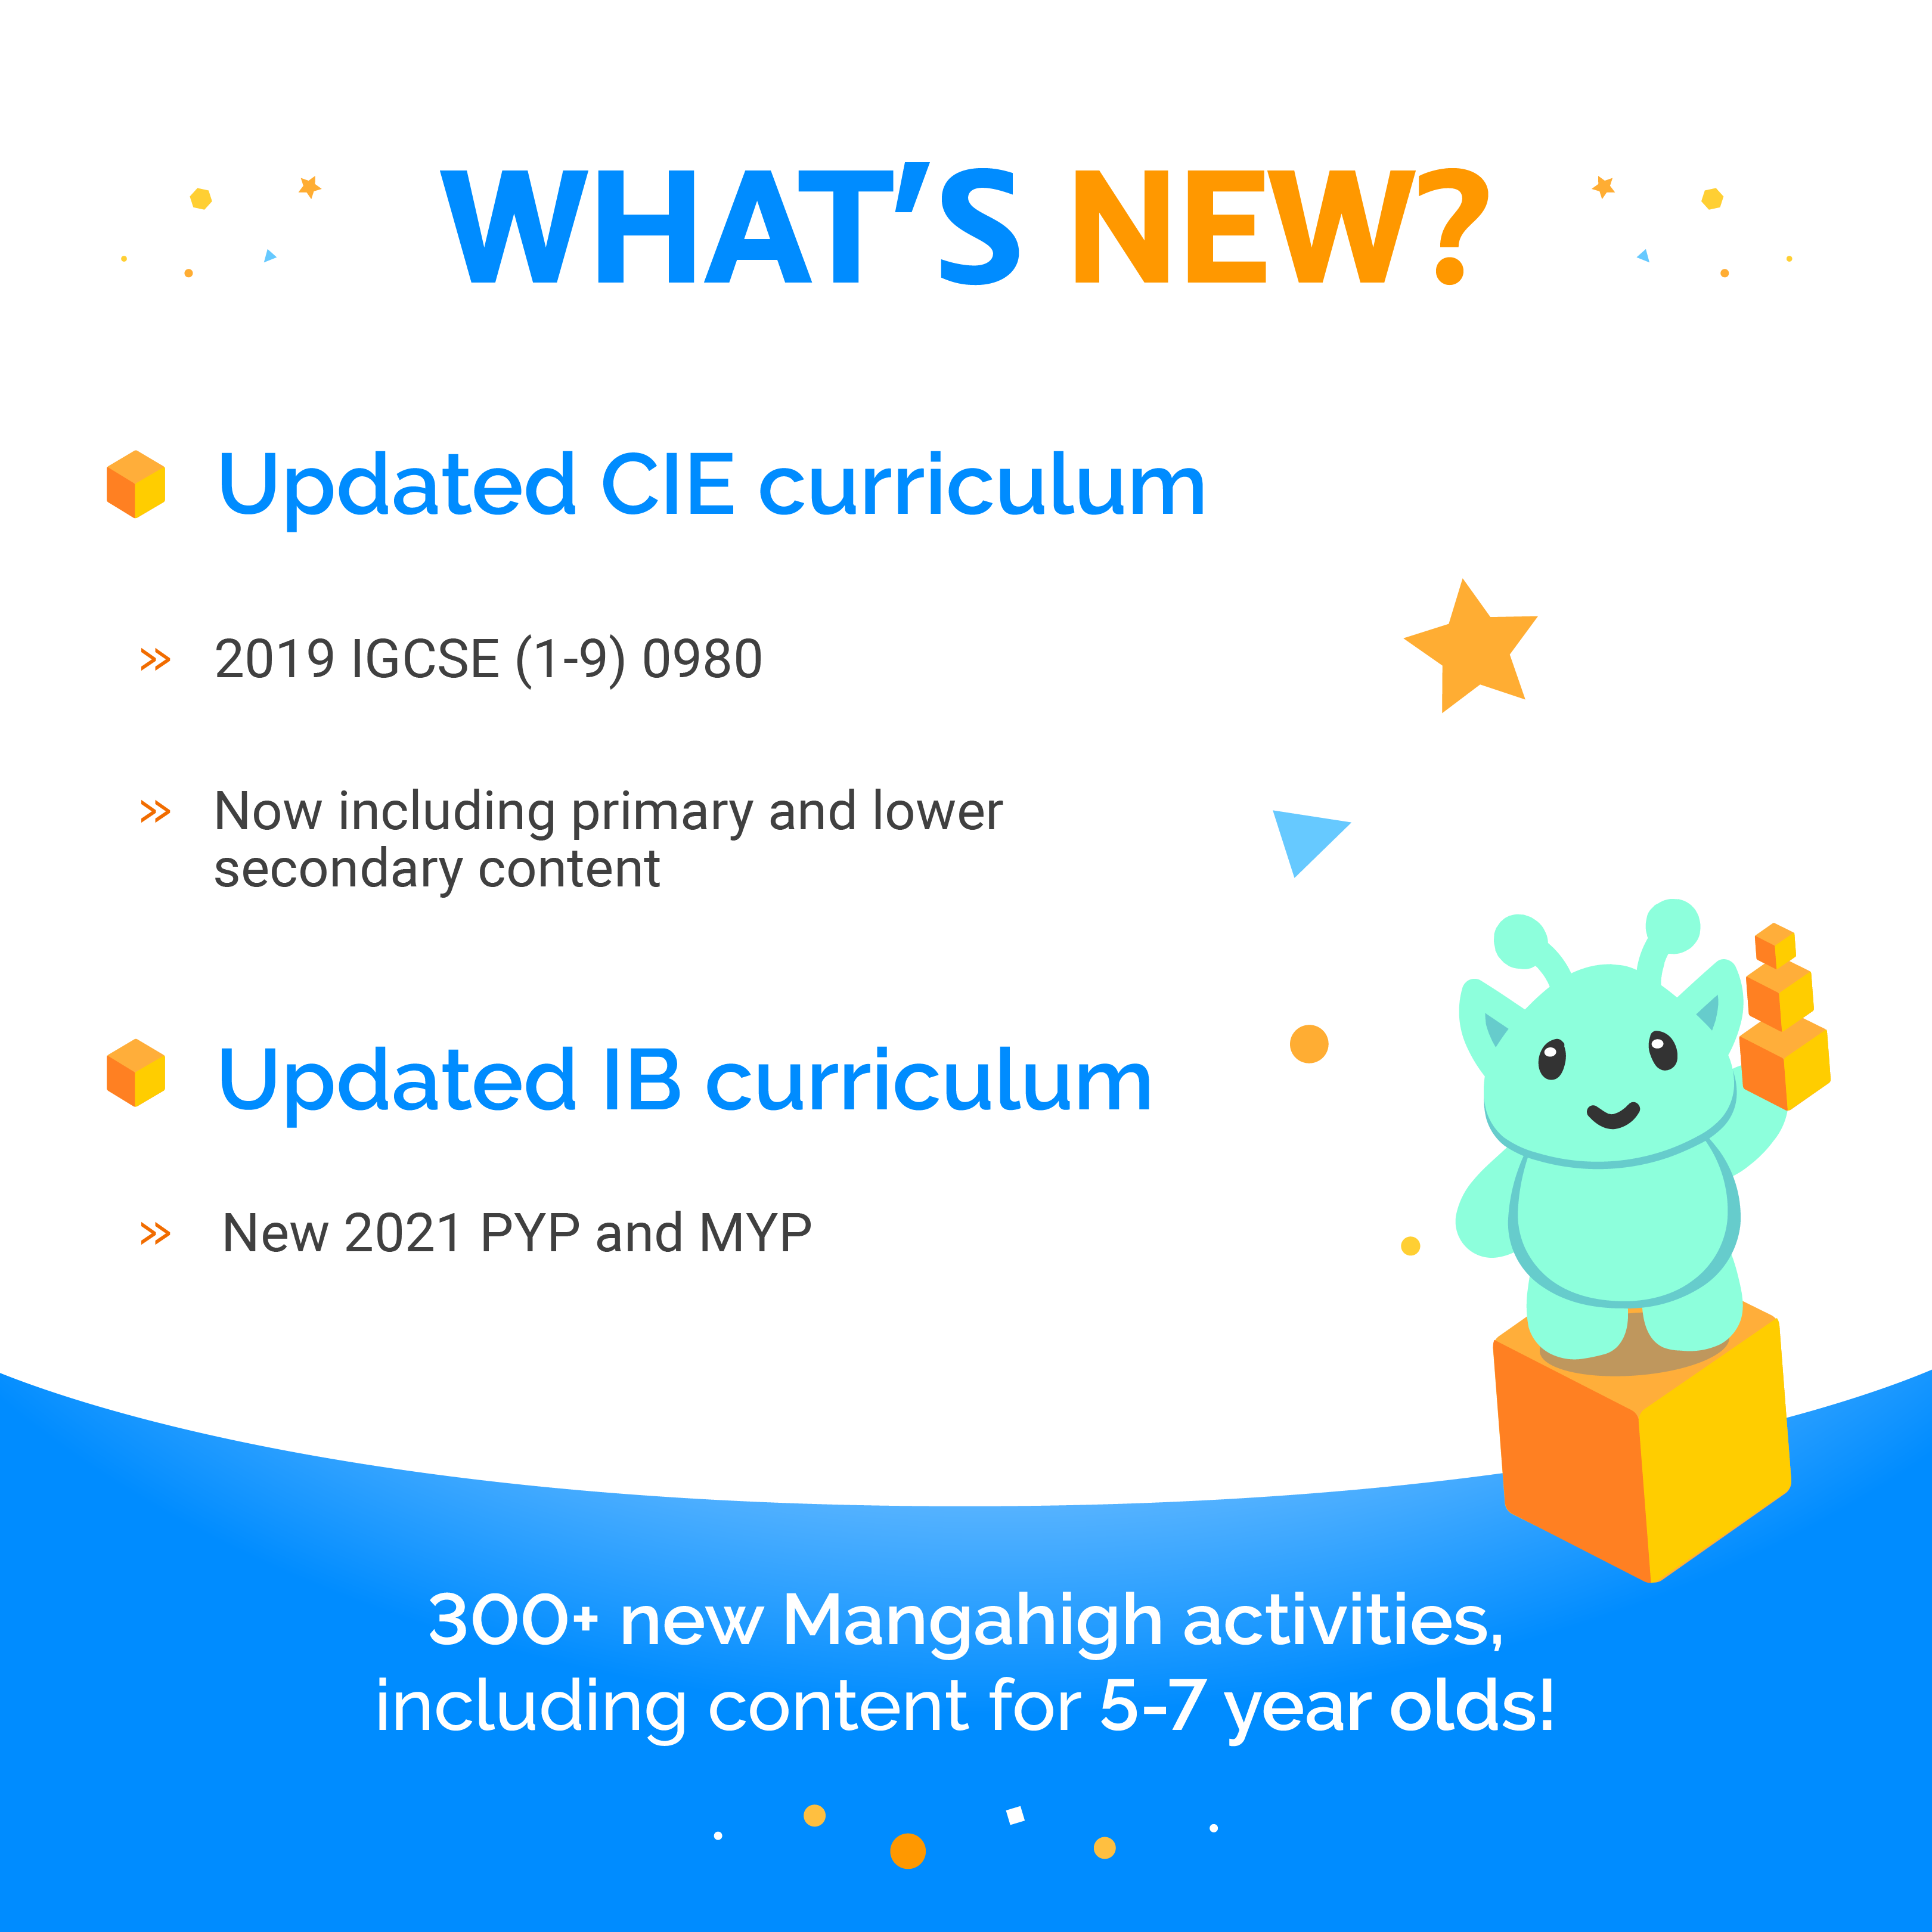 what's new? Updated CIE curriculum, 2019 IGCSE (1-0) 0980. Now including primary and lower secondary content. Updated IB curriculum, new 2021 PYP and MYP. 300+ new Manahigh activities, including content for 5-7 year old